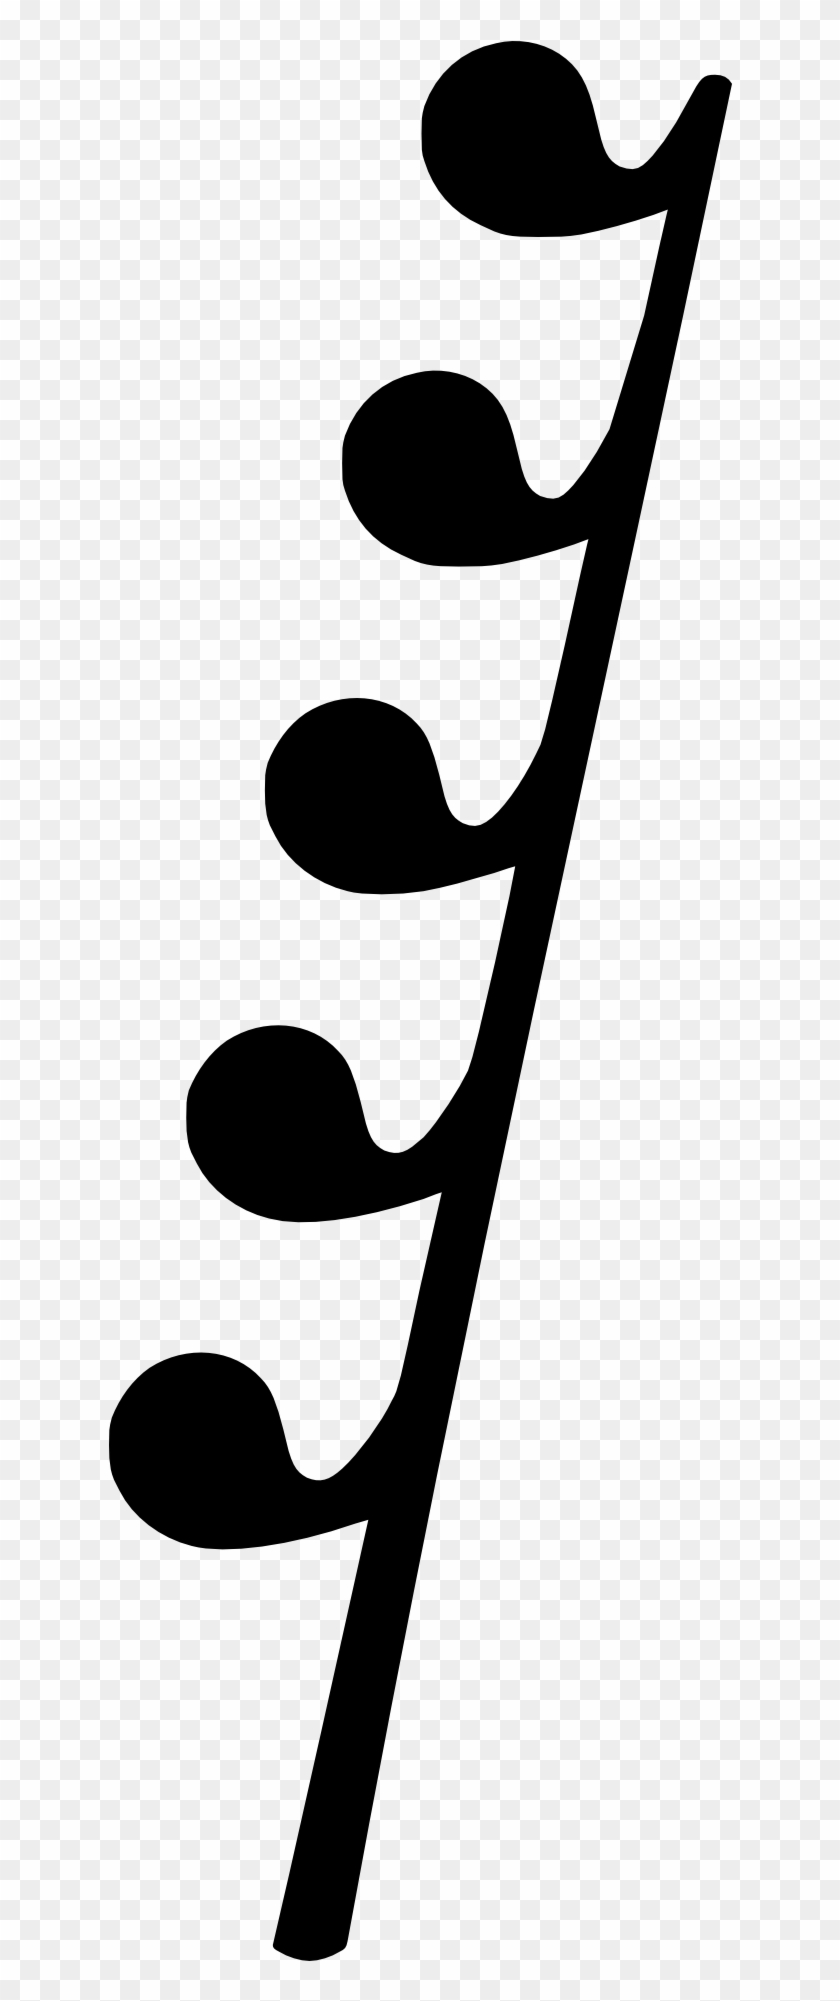 Music Note Musical Notation Symbol - 128th Rest Clipart #5057678